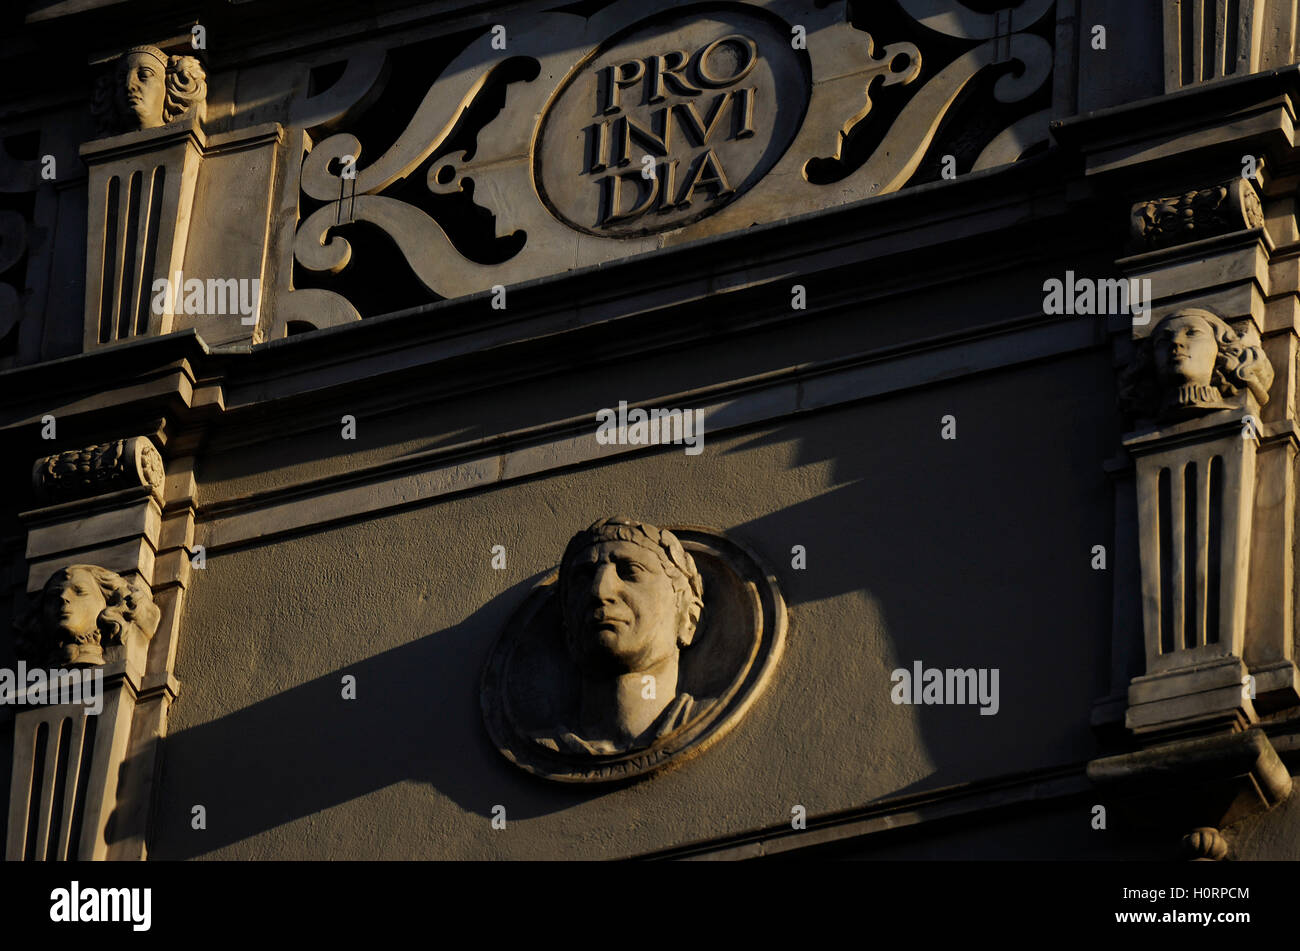 Poland. Gdansk. City centre. Facade decorated with medallions of Roman emperors. Detail. Stock Photo